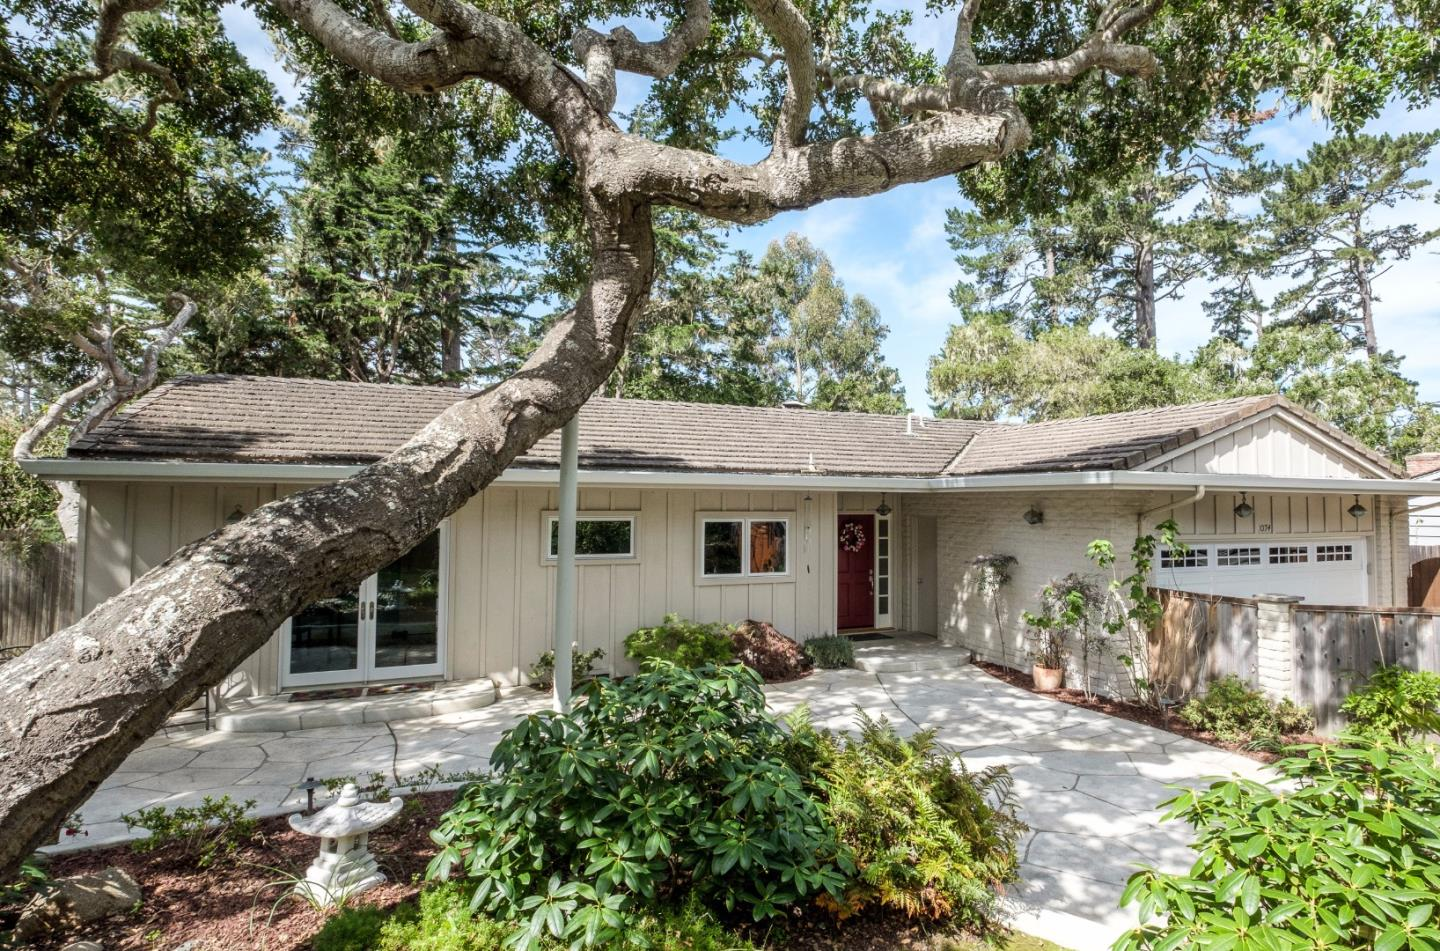 Single Family Home for Sale at 1074 Mission Road Pebble Beach, California 93953 United States